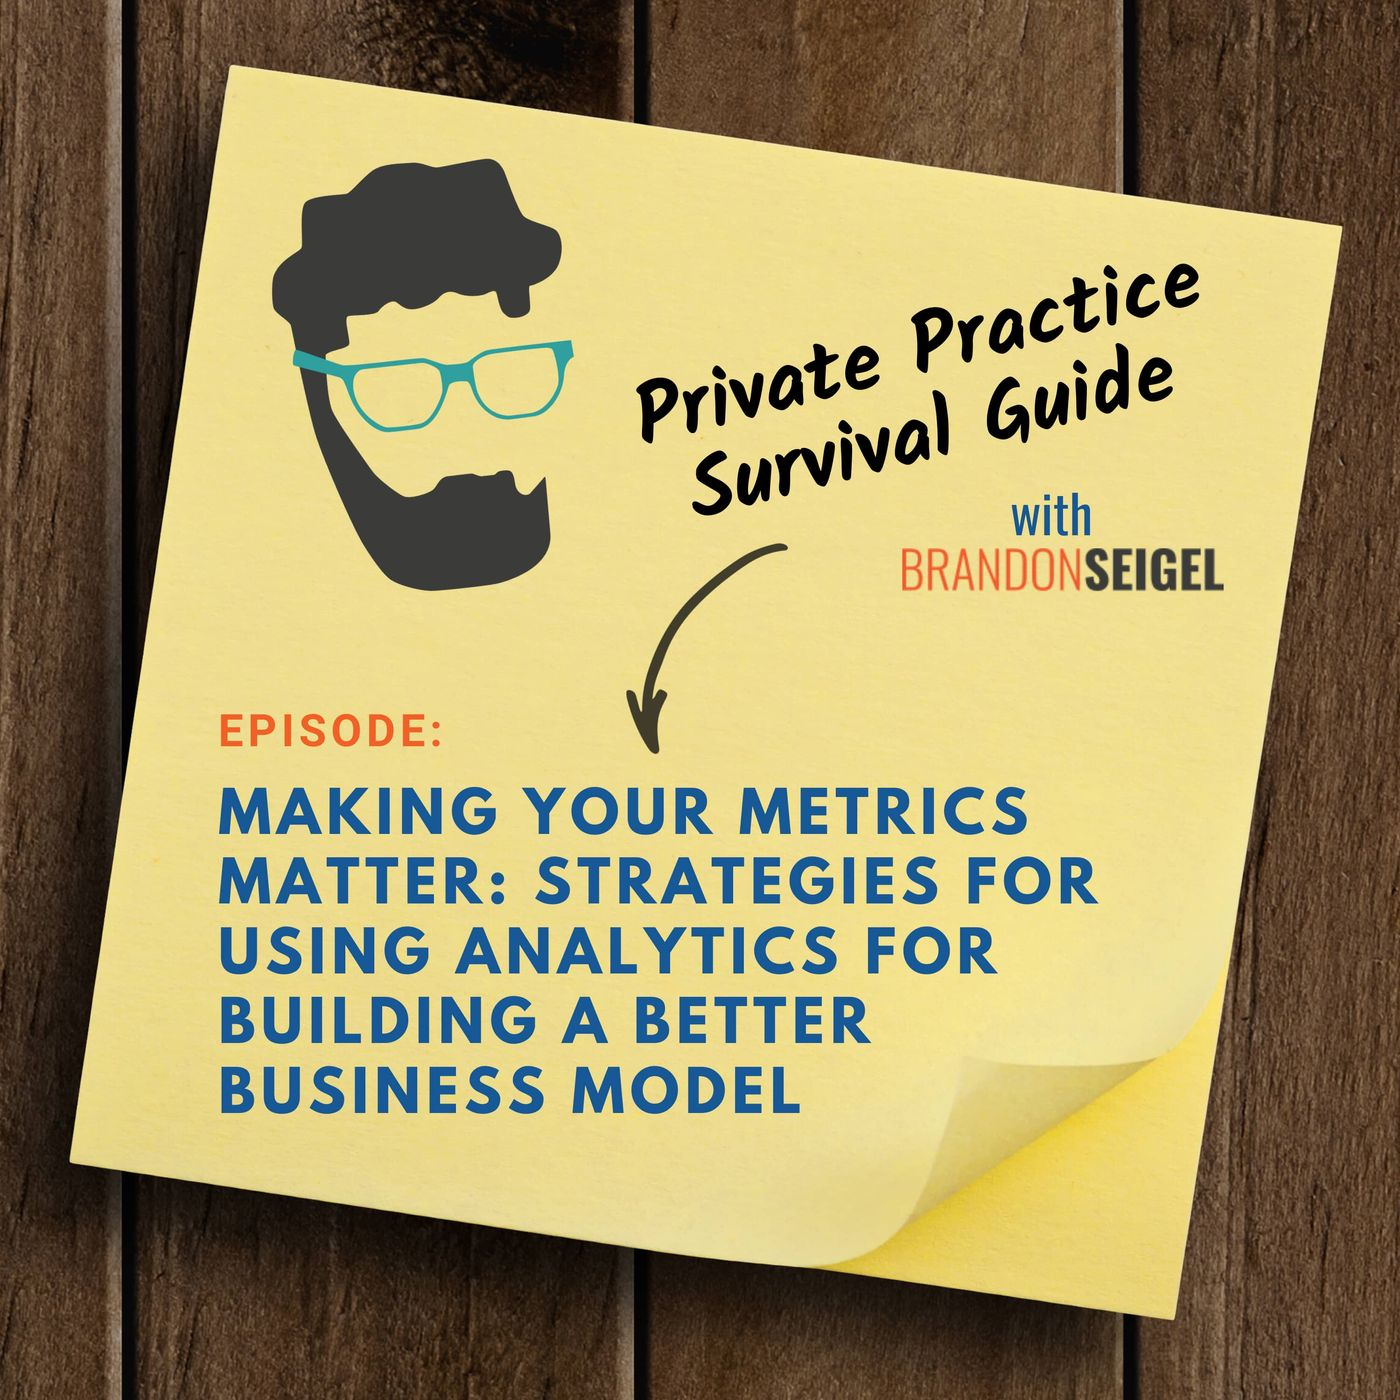 Making Your Metrics Matter: Strategies For Using Analytics For Building A Better Business Model